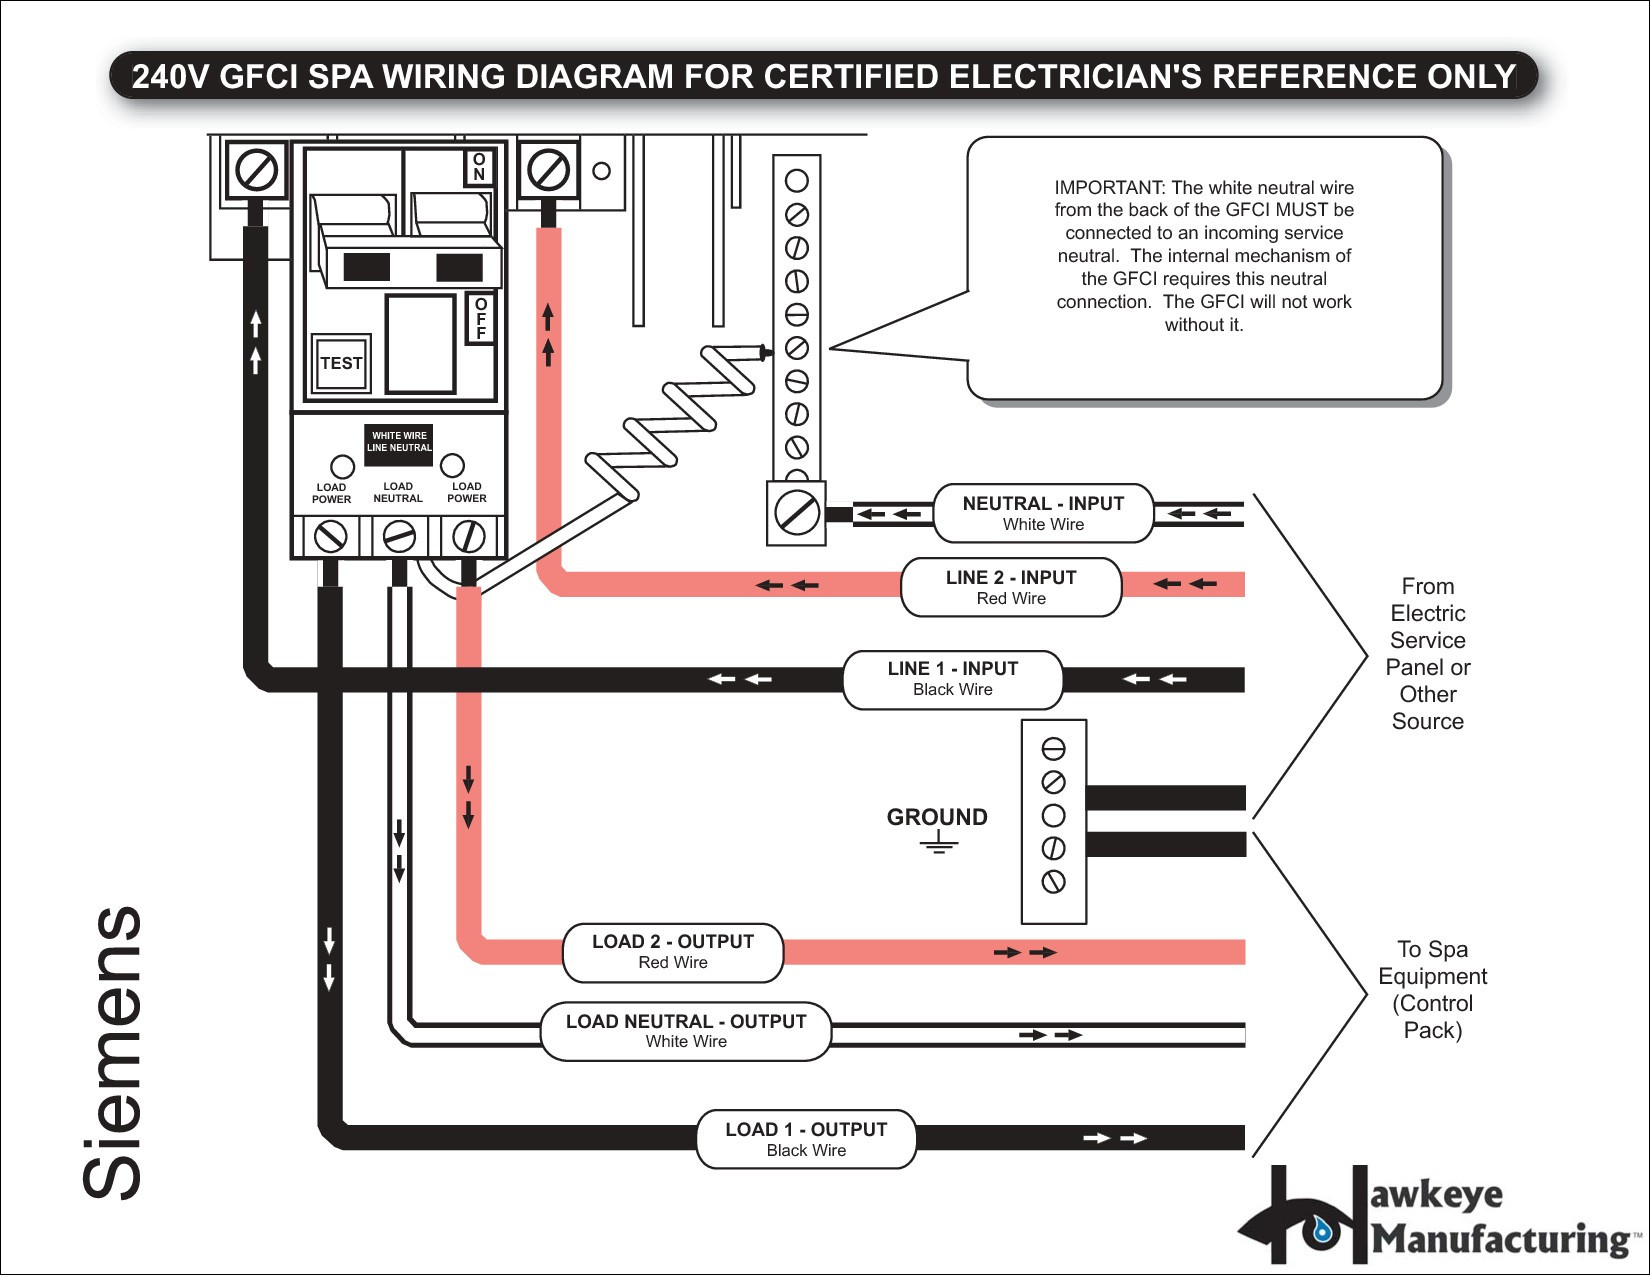 hight resolution of wiring diagrams circuit breaker along with double pole gfci breaker 2 pole gfci breaker wiring diagram 2p gfci breaker wiring diagram